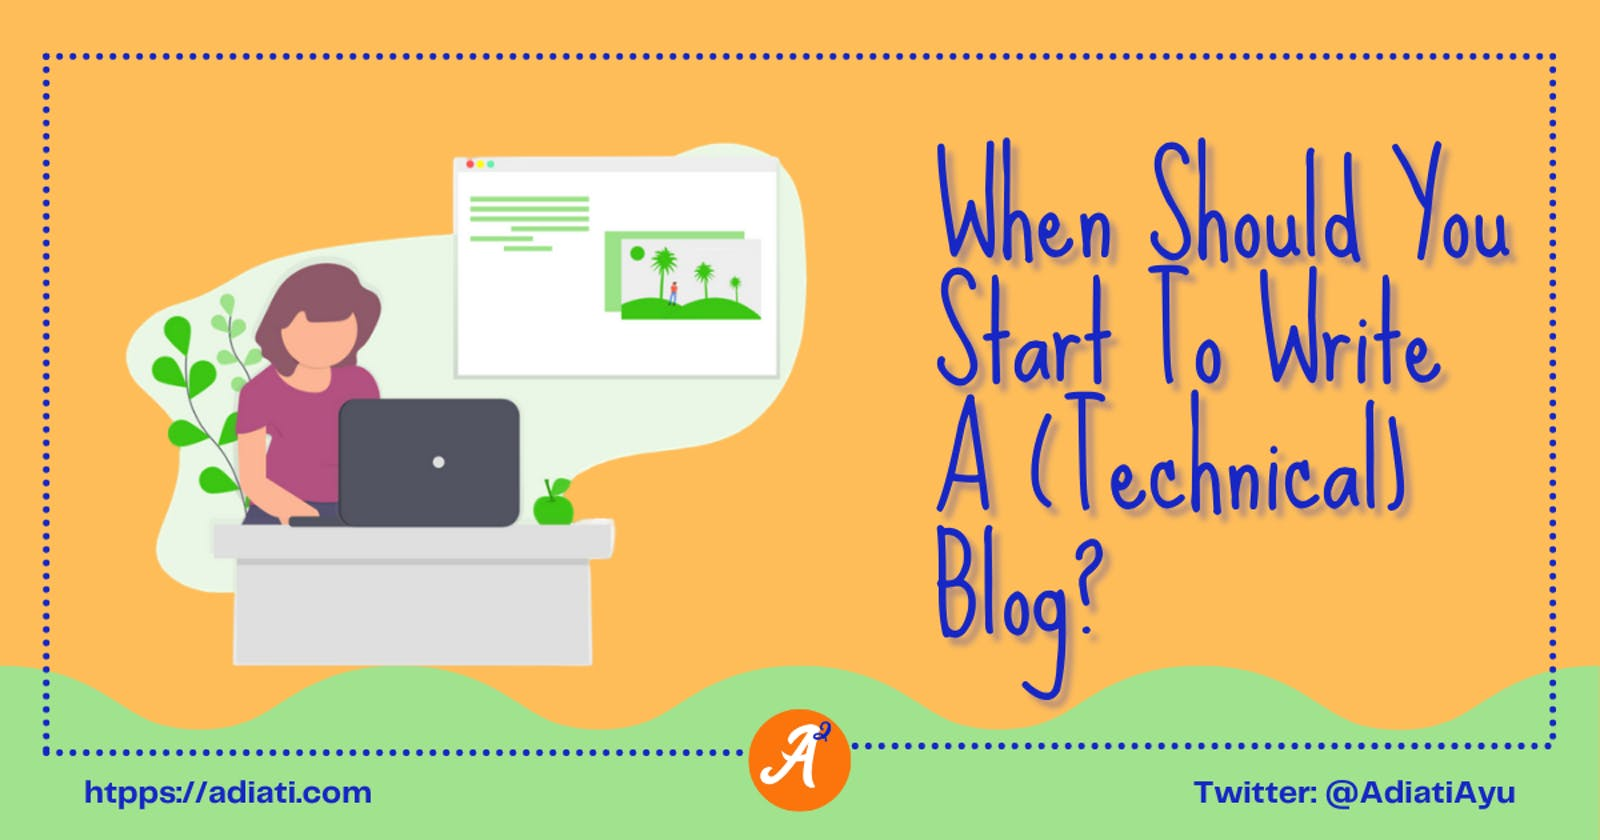 When Should You Start To Write A (Technical) Blog?